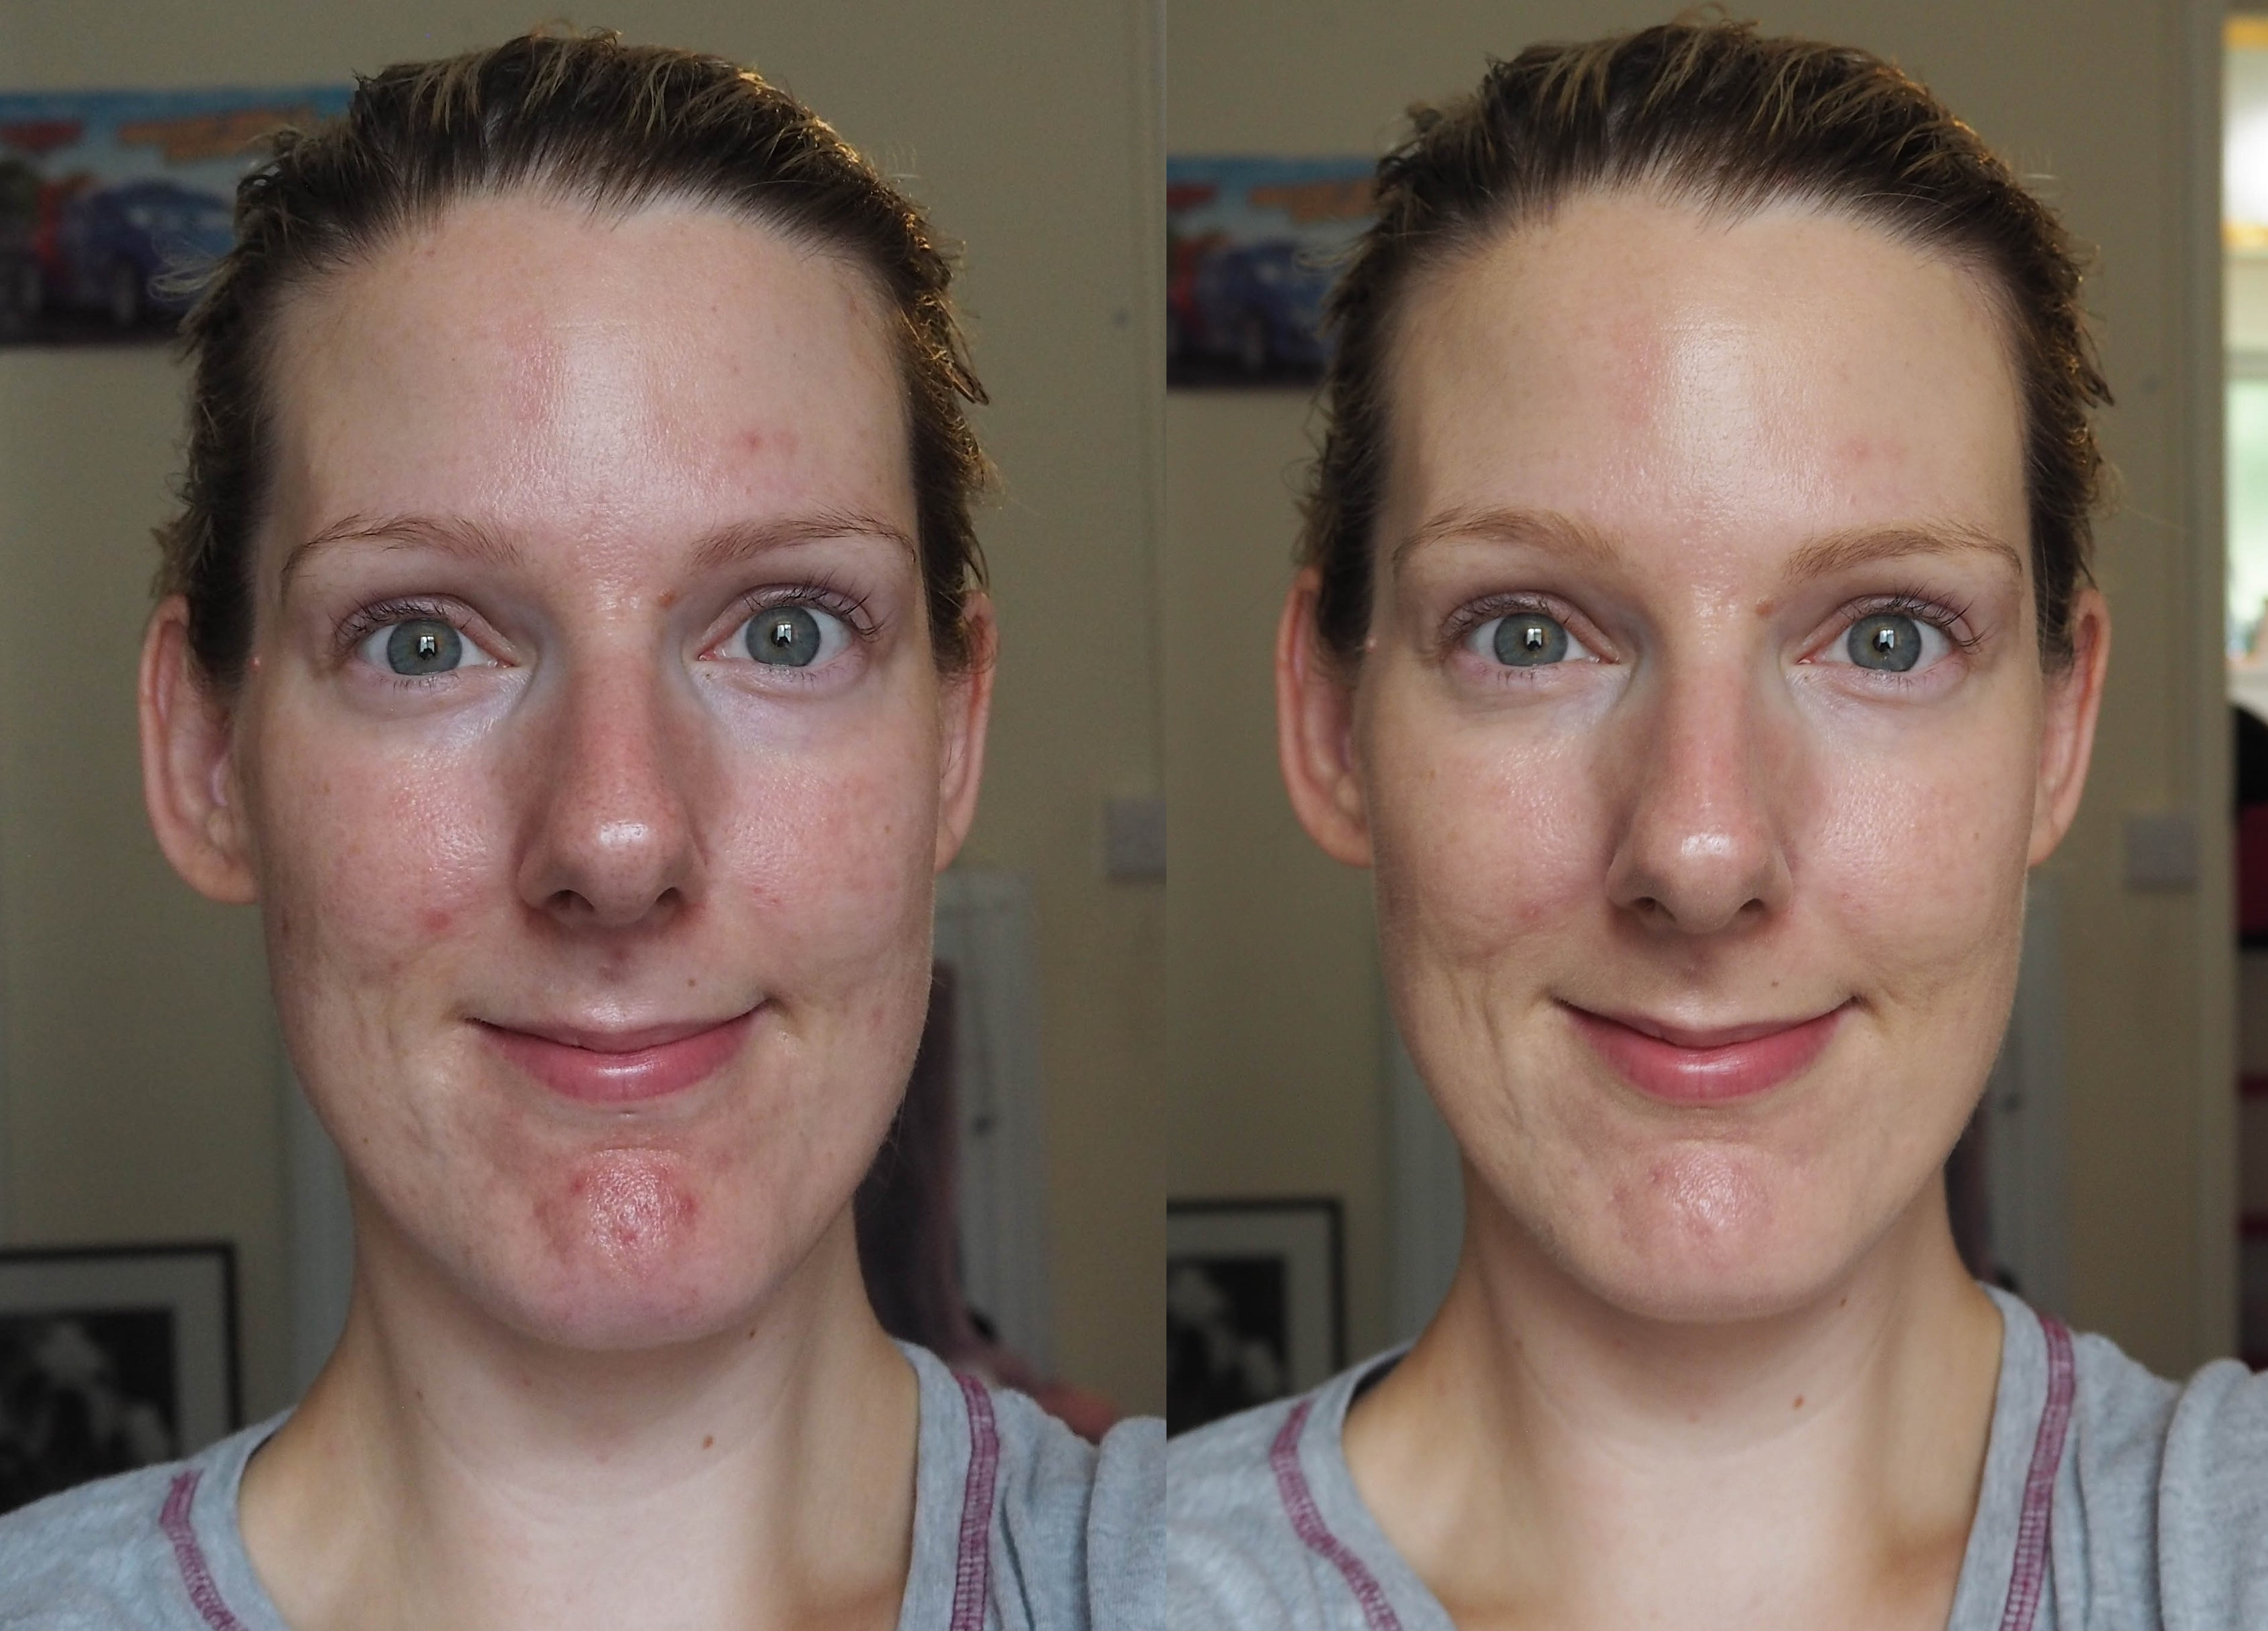 Revlon Photoready Candid Foundation before and after face pictures